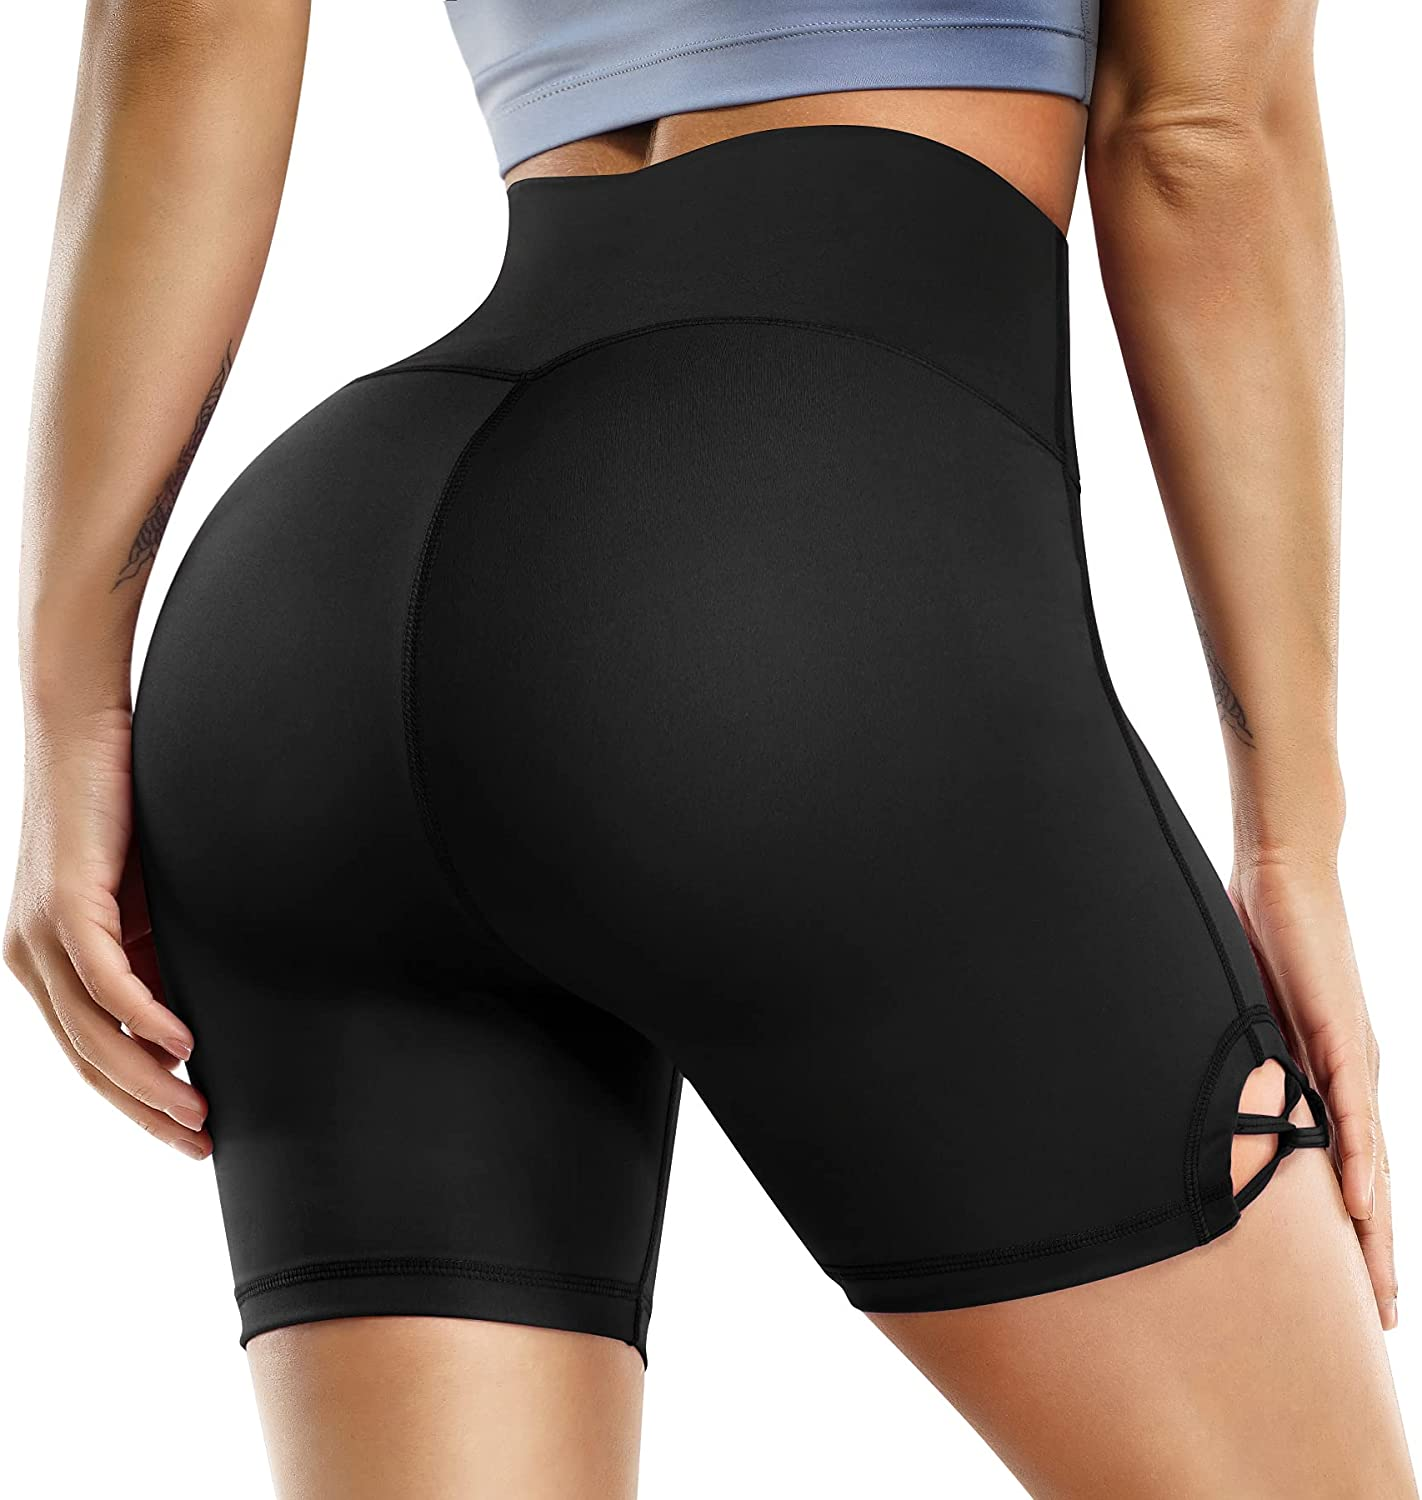 LEINIDINA Women's High Waist Yoga Tummy New products world's highest quality popular Ranking TOP14 Shorts Pock Control with